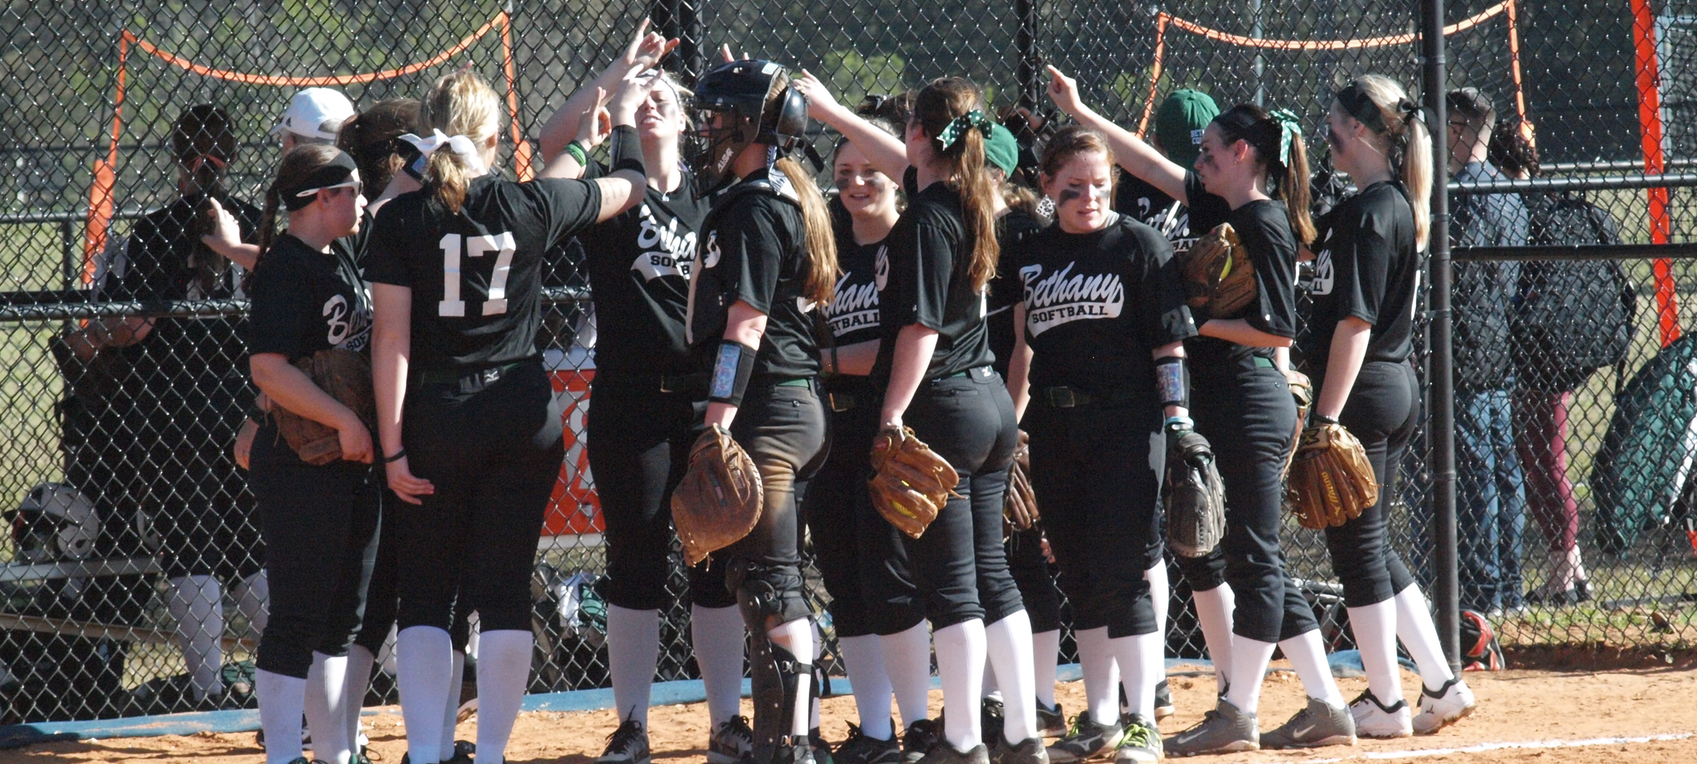 Bison Softball Falls Prey to a Pair of Walk-Offs in PAC Championship Final